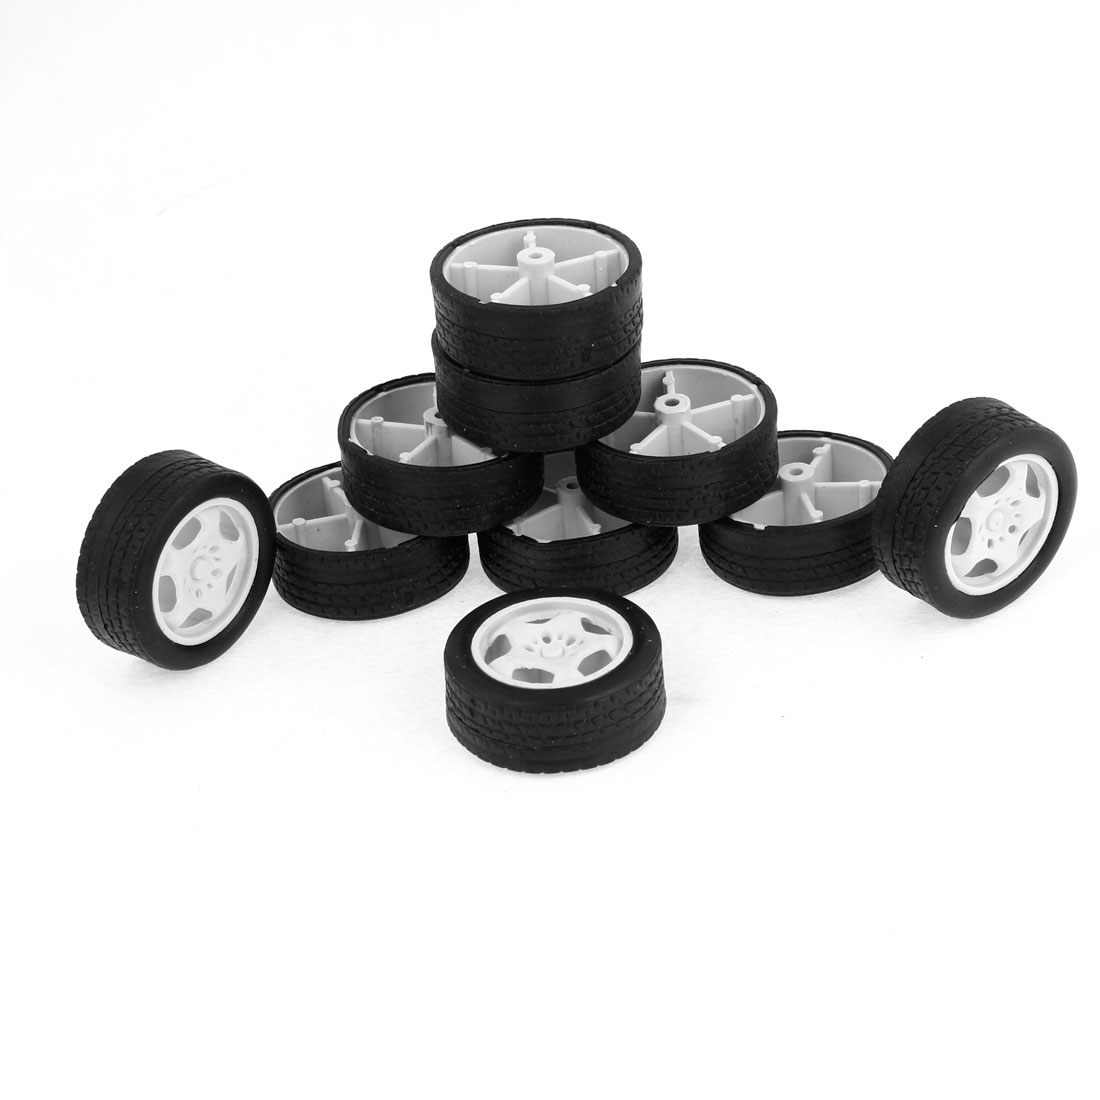 10 Pieces Repairing Part 34mm Dia Rubber Roll Plastic Core Toy Car Truck Wheels